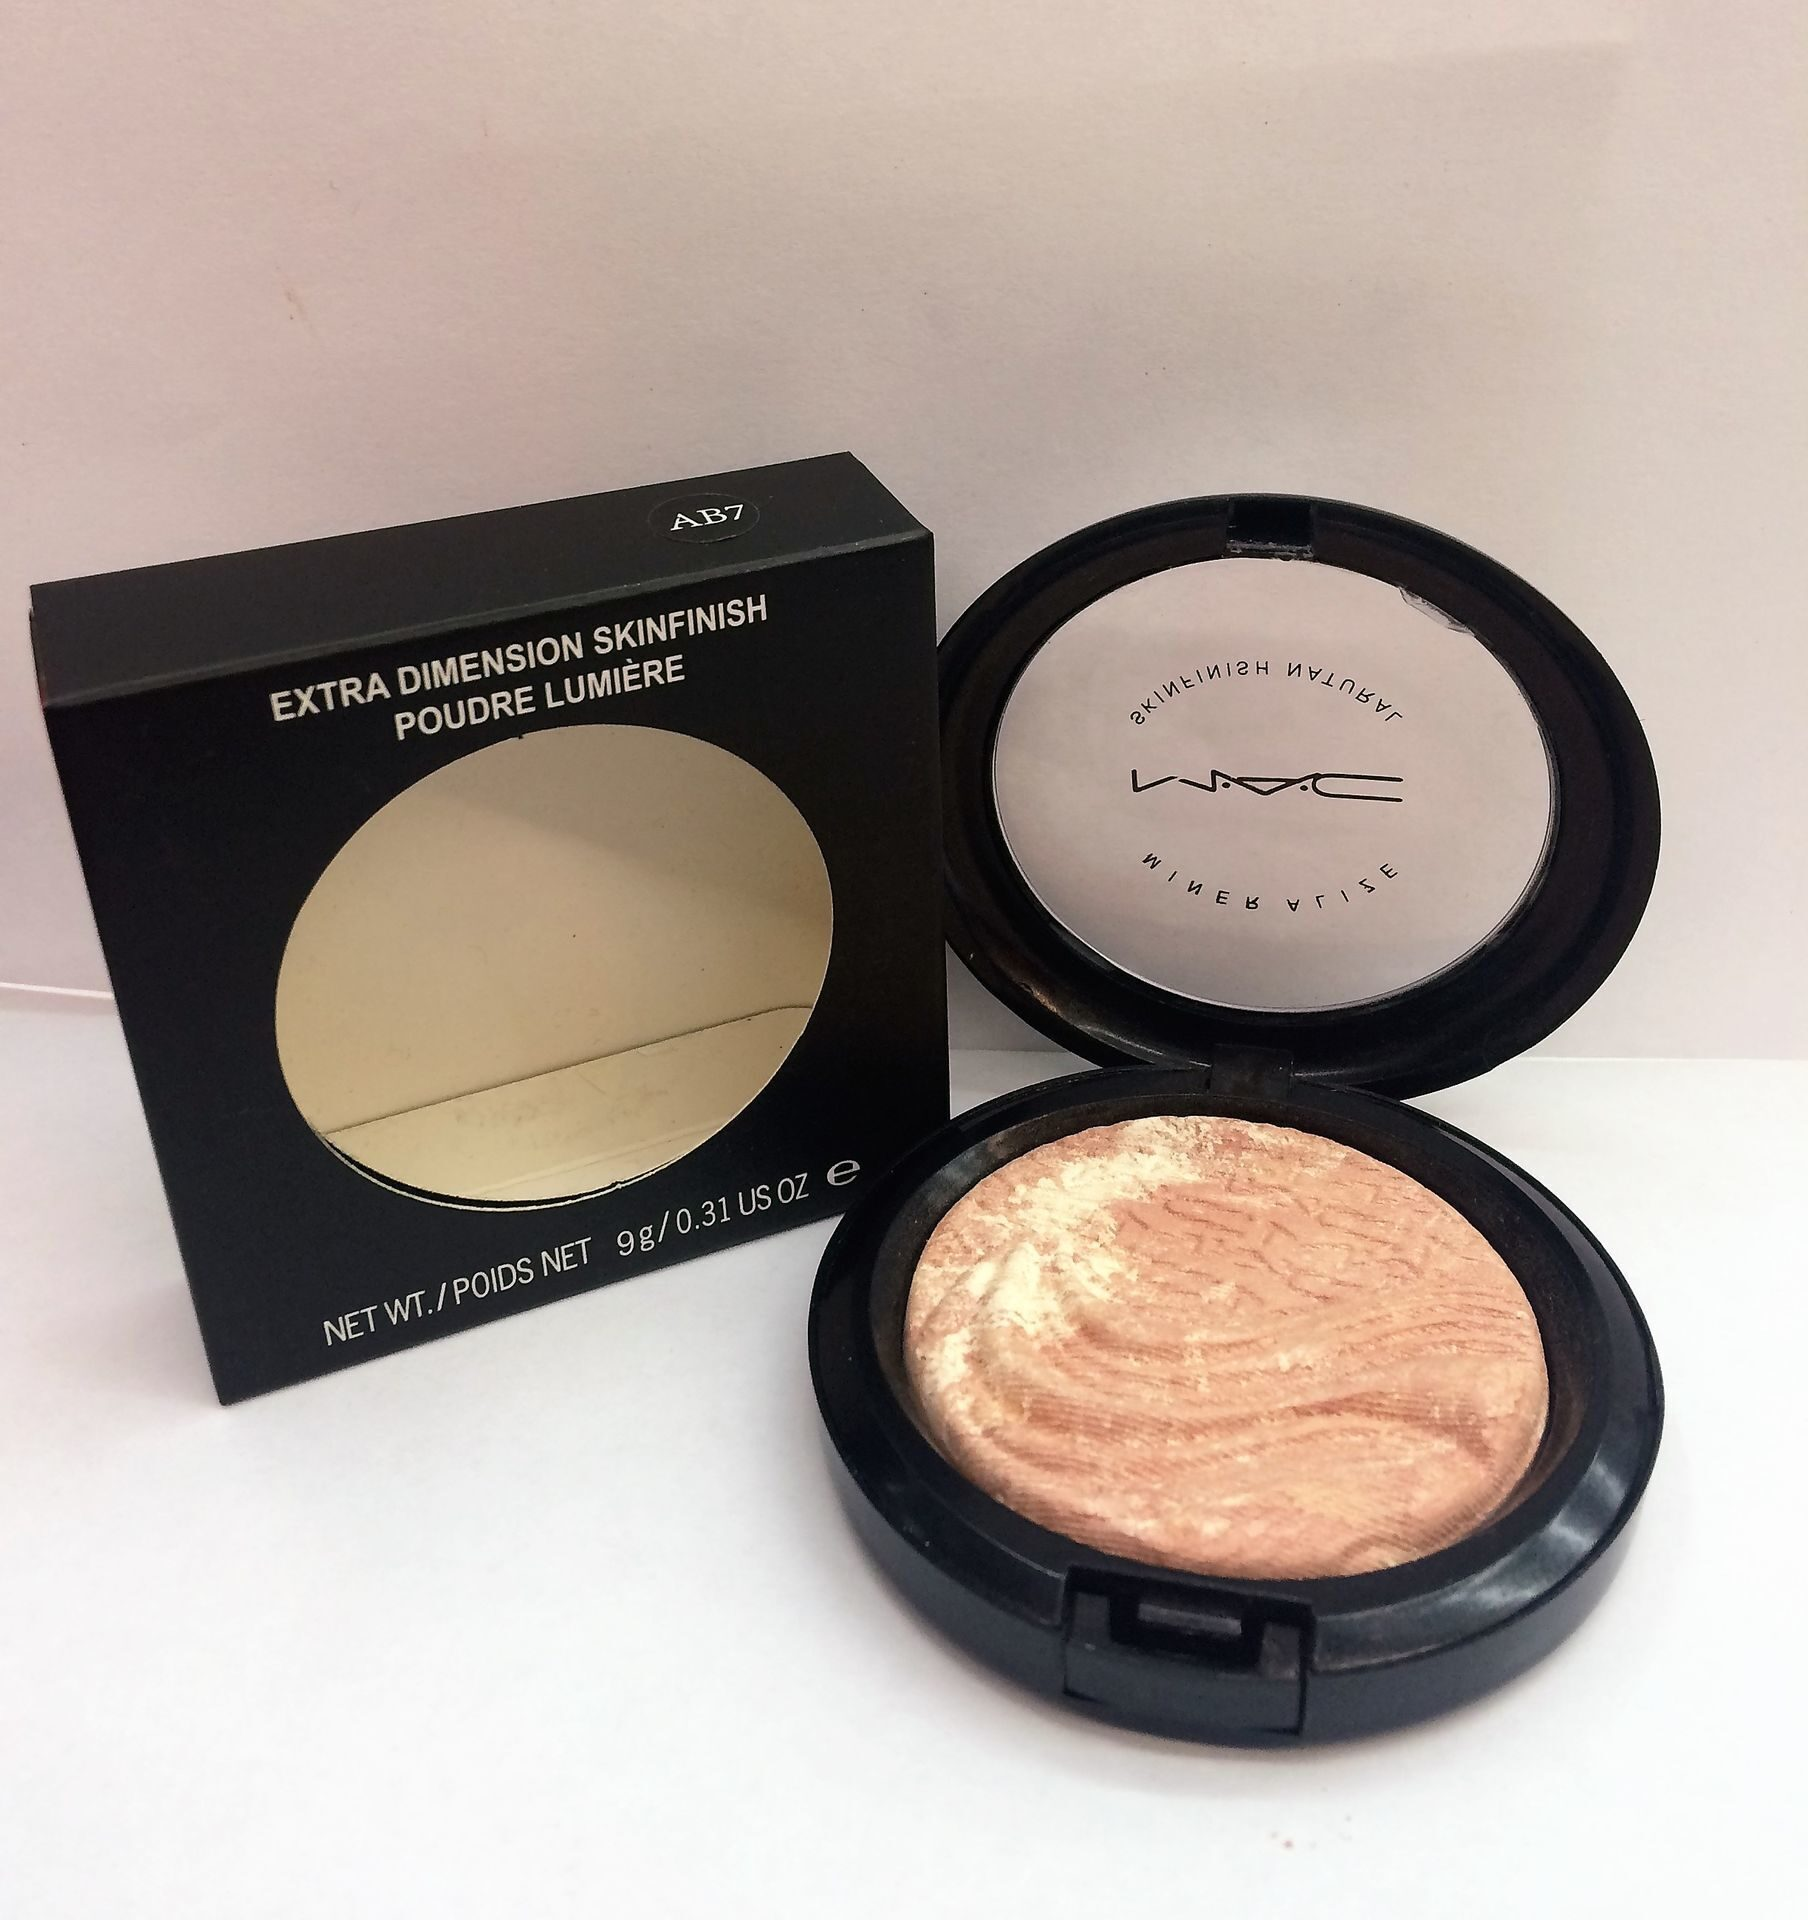 MAC AB7 extra dimension skinfinish  poudre lumiere